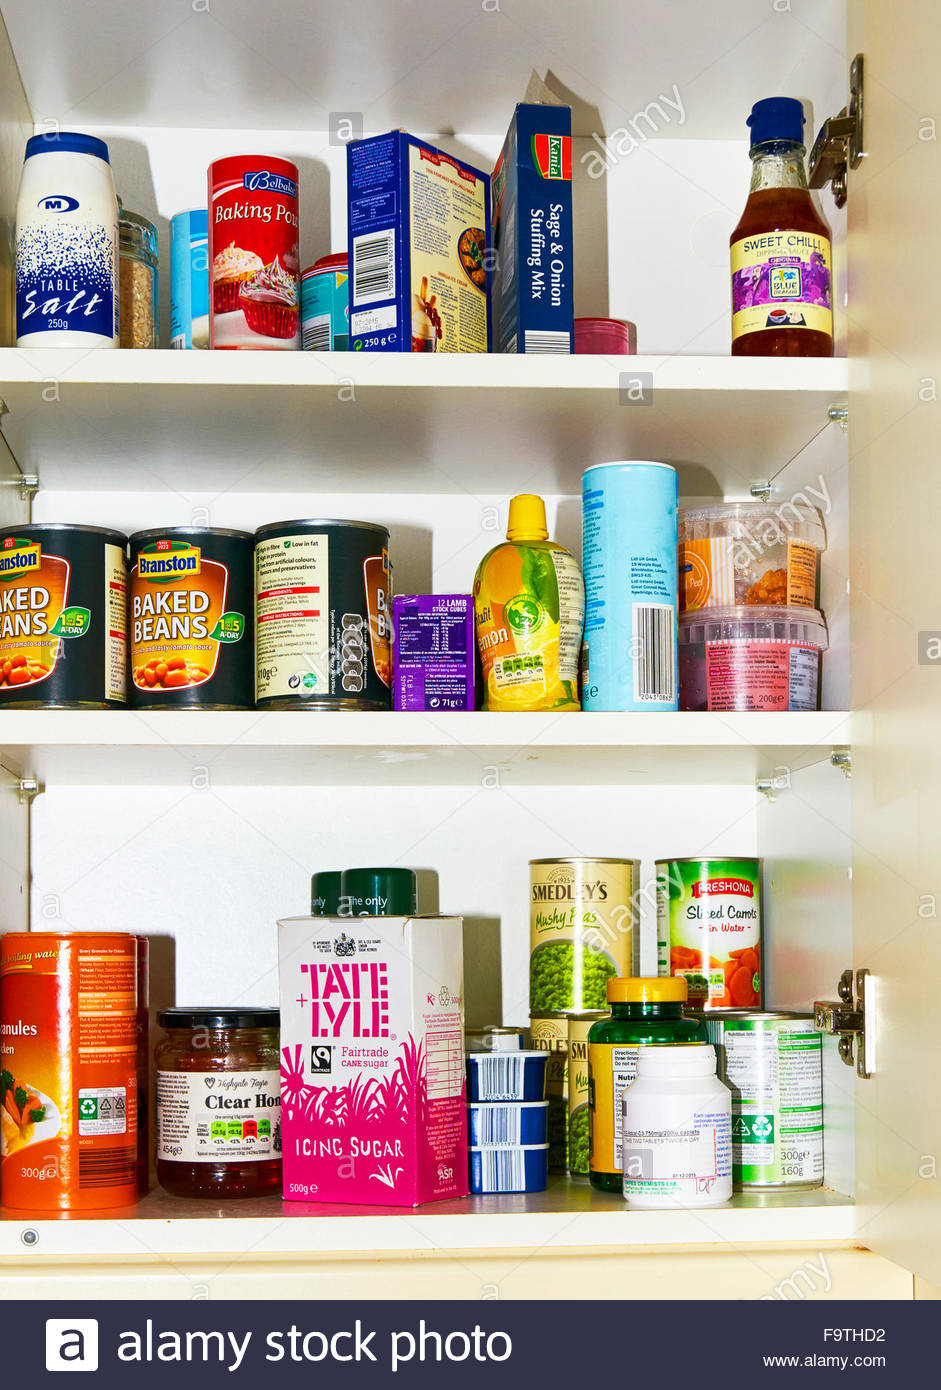 A well stocked food kitchen cupboard with packets and tins of various foodstuffs - Stock Image